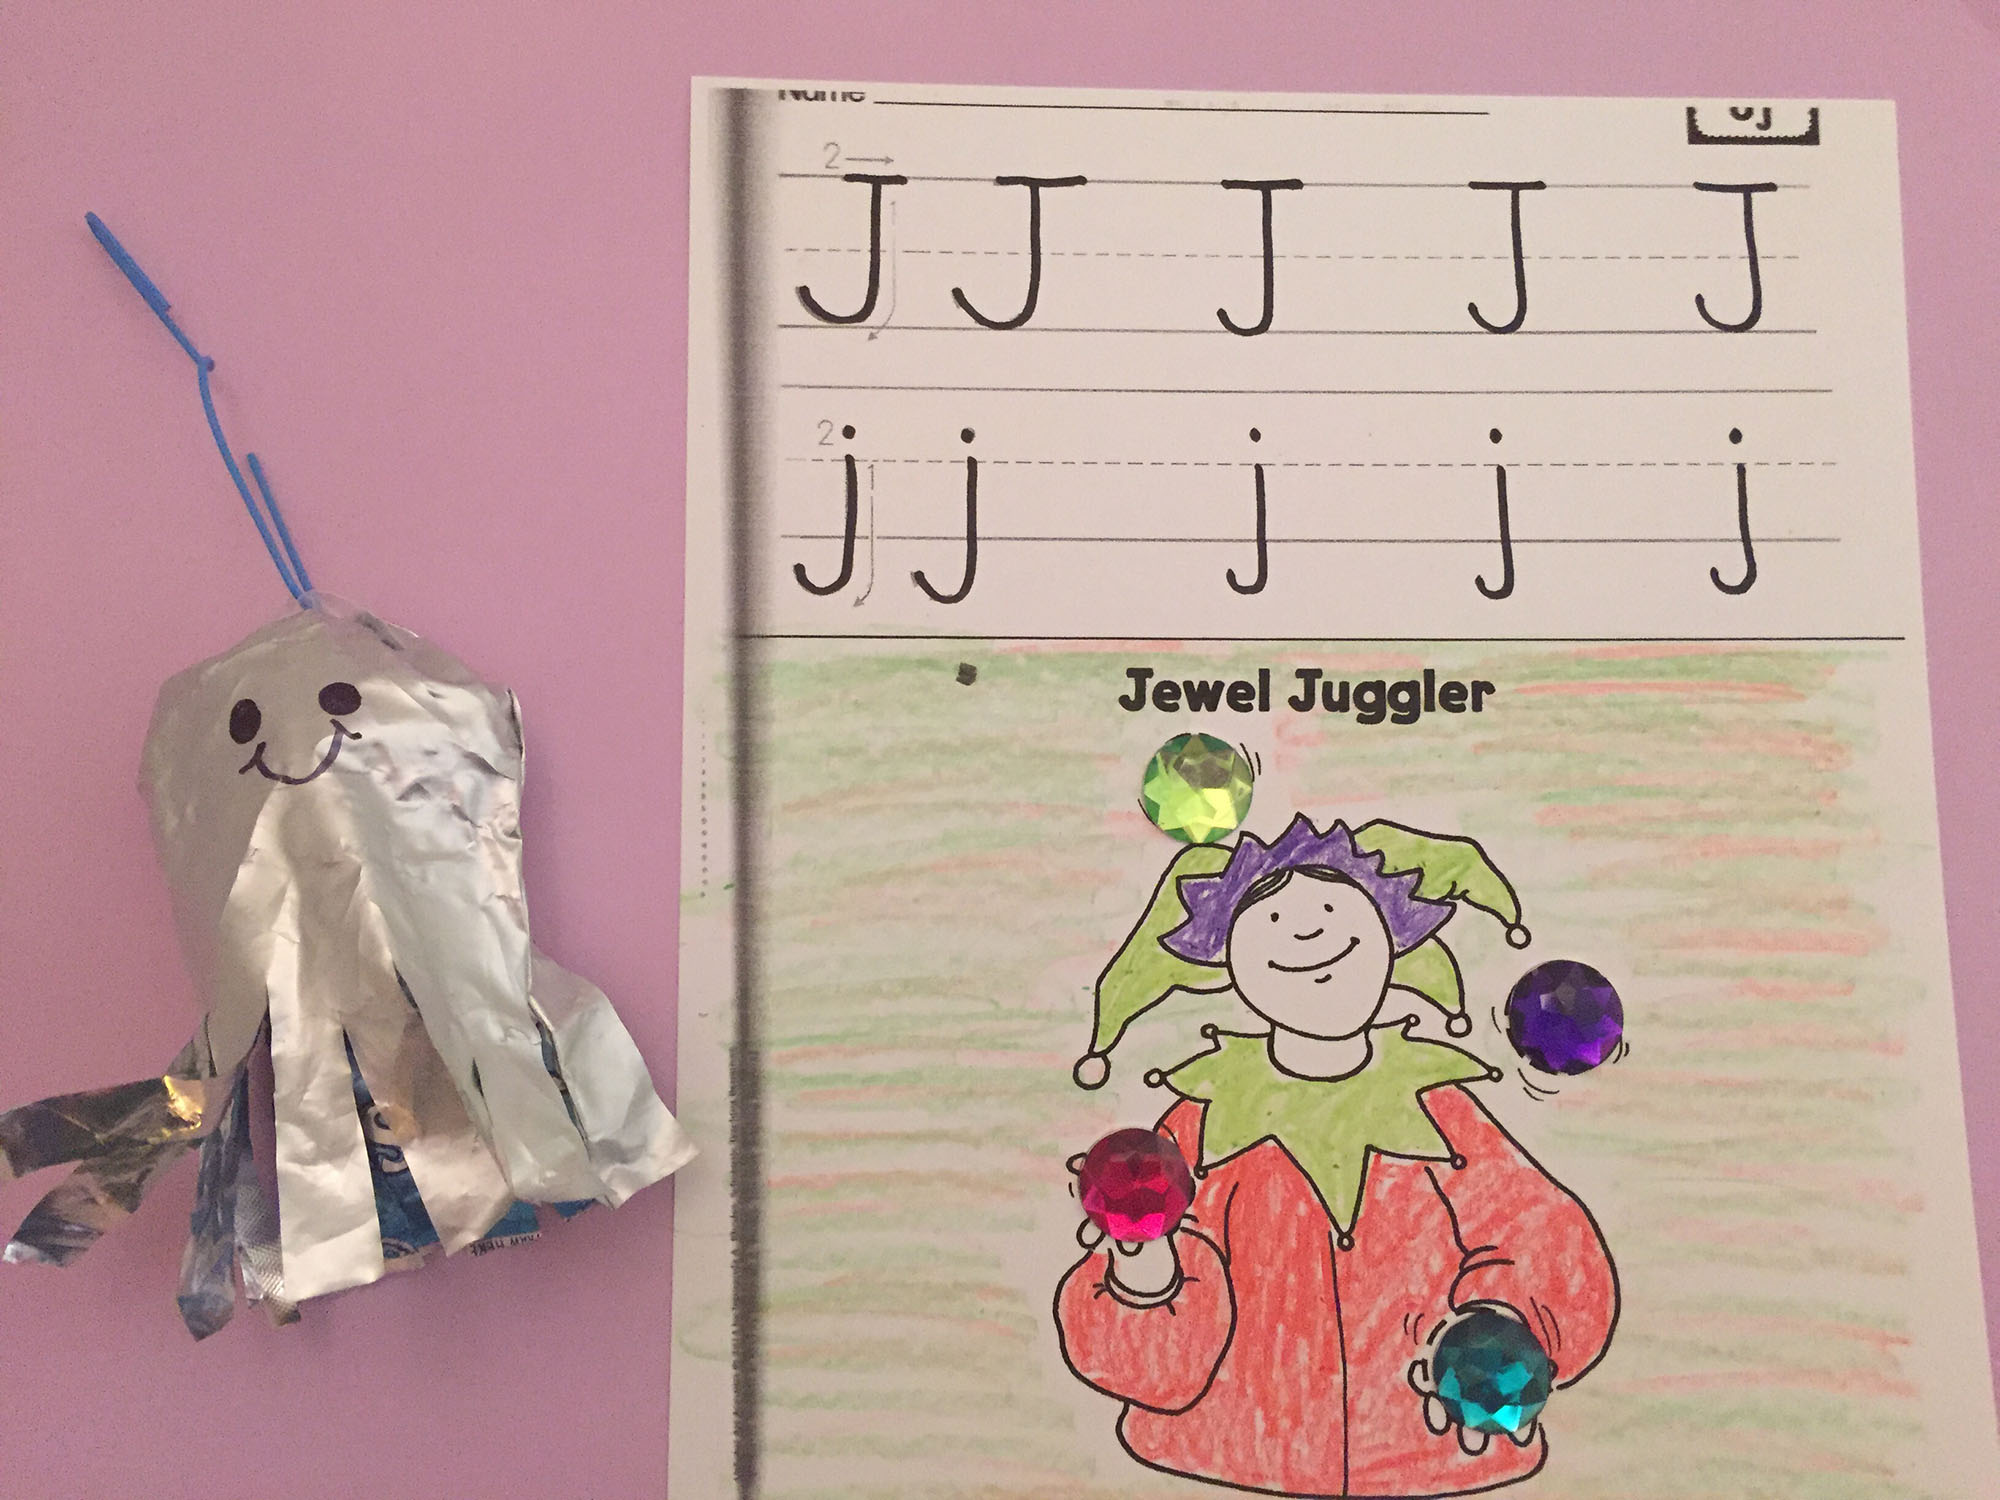 Juice-Pouch Jellyfish and Jewel Juggler